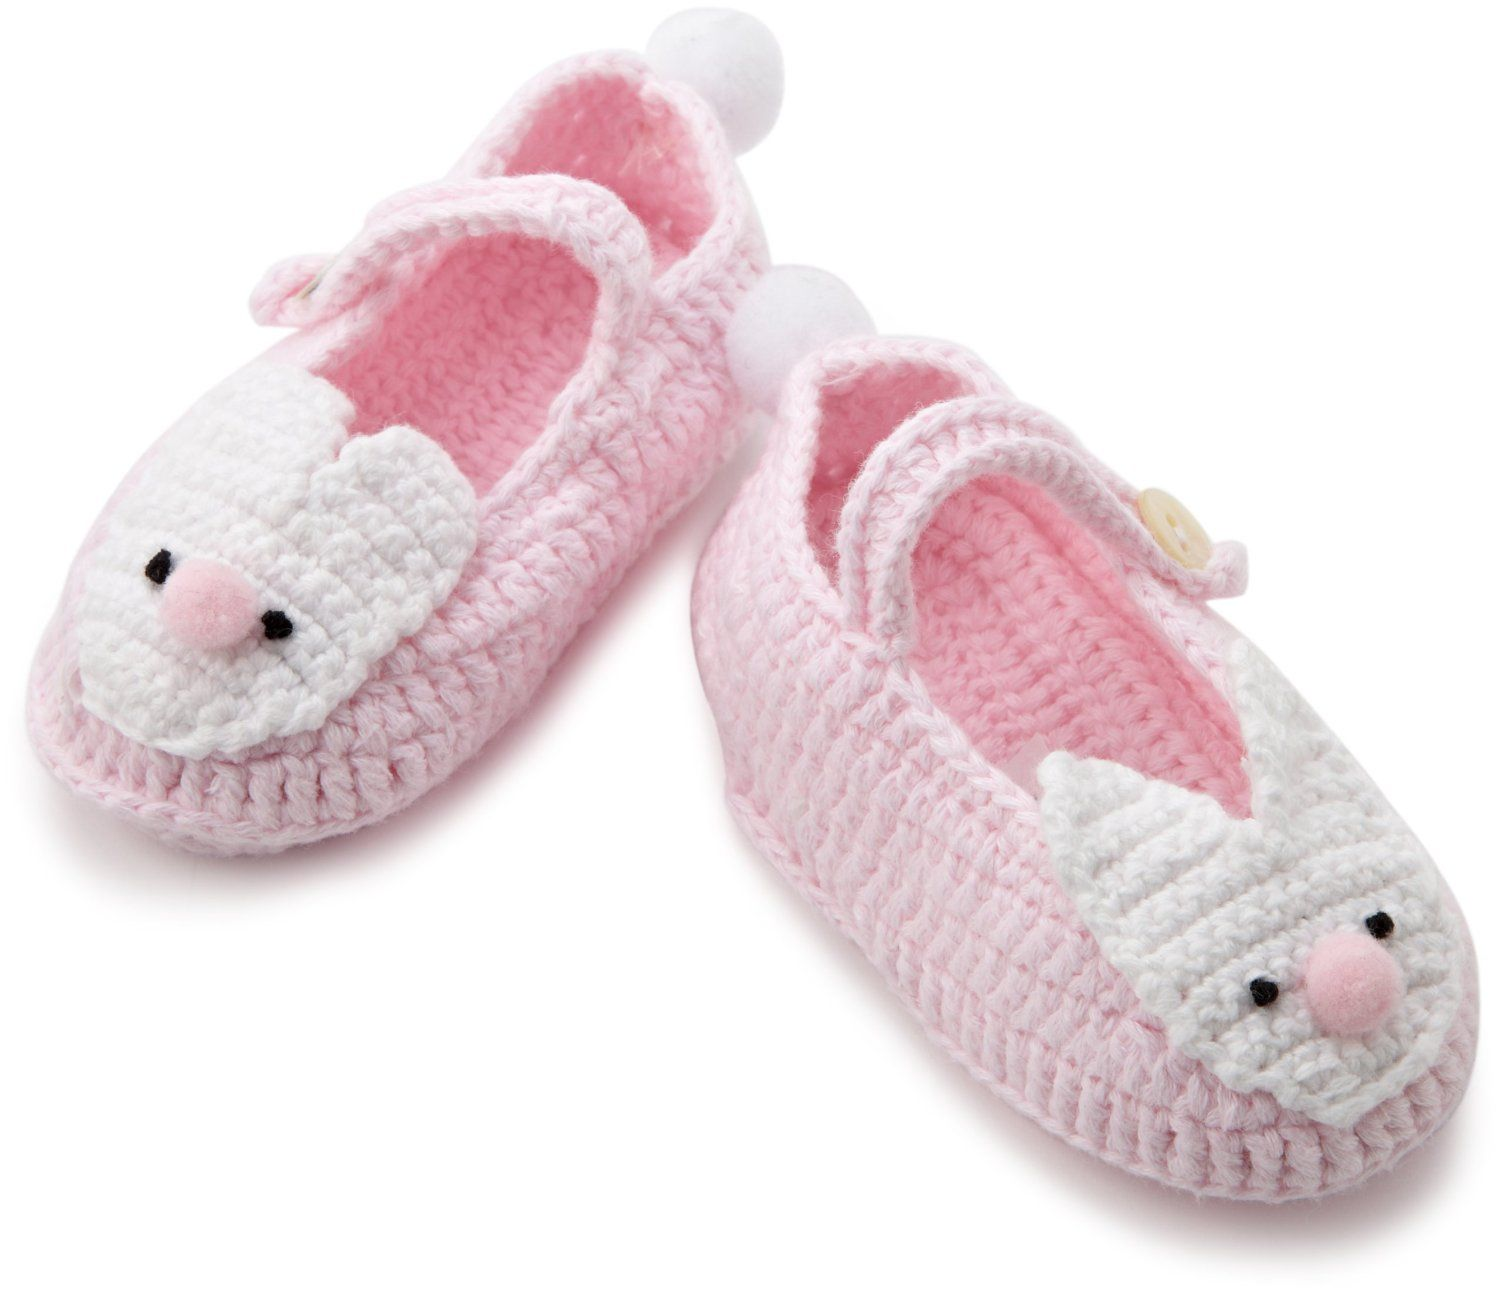 eecd61b26050d Pin by Angelina Marcheline on Baby girl shoes | Crochet slippers ...